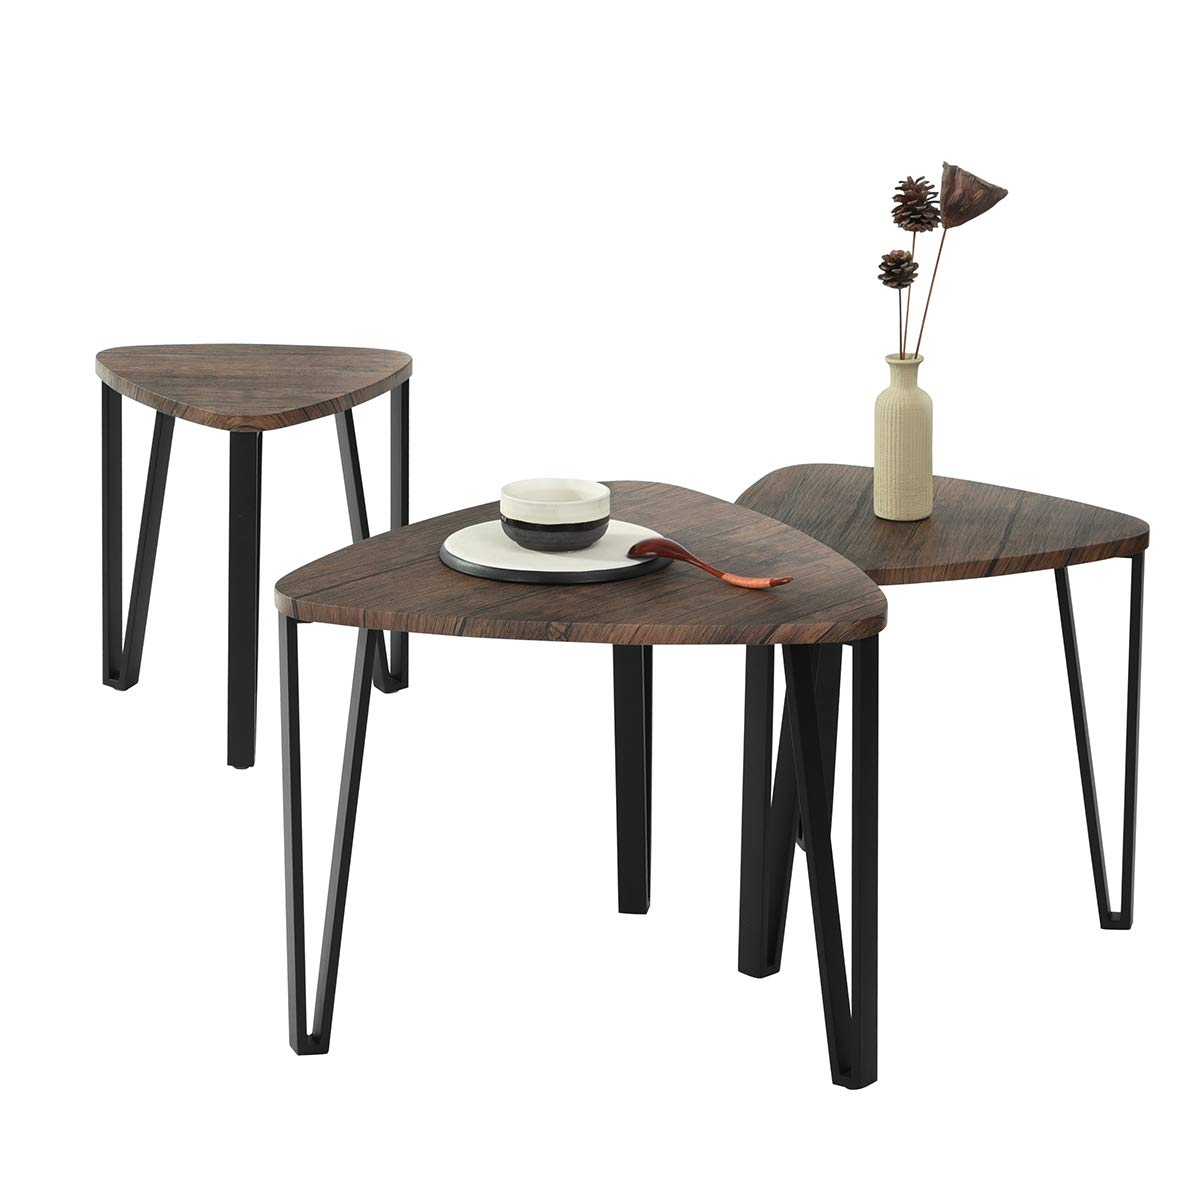 PexFix Nesting Coffee Table Set of 3, Industrial Style End Side Table for Living Room Stacking Sofa Snack Tables Leisure Wooden Nightstands for Home Office by PexFix